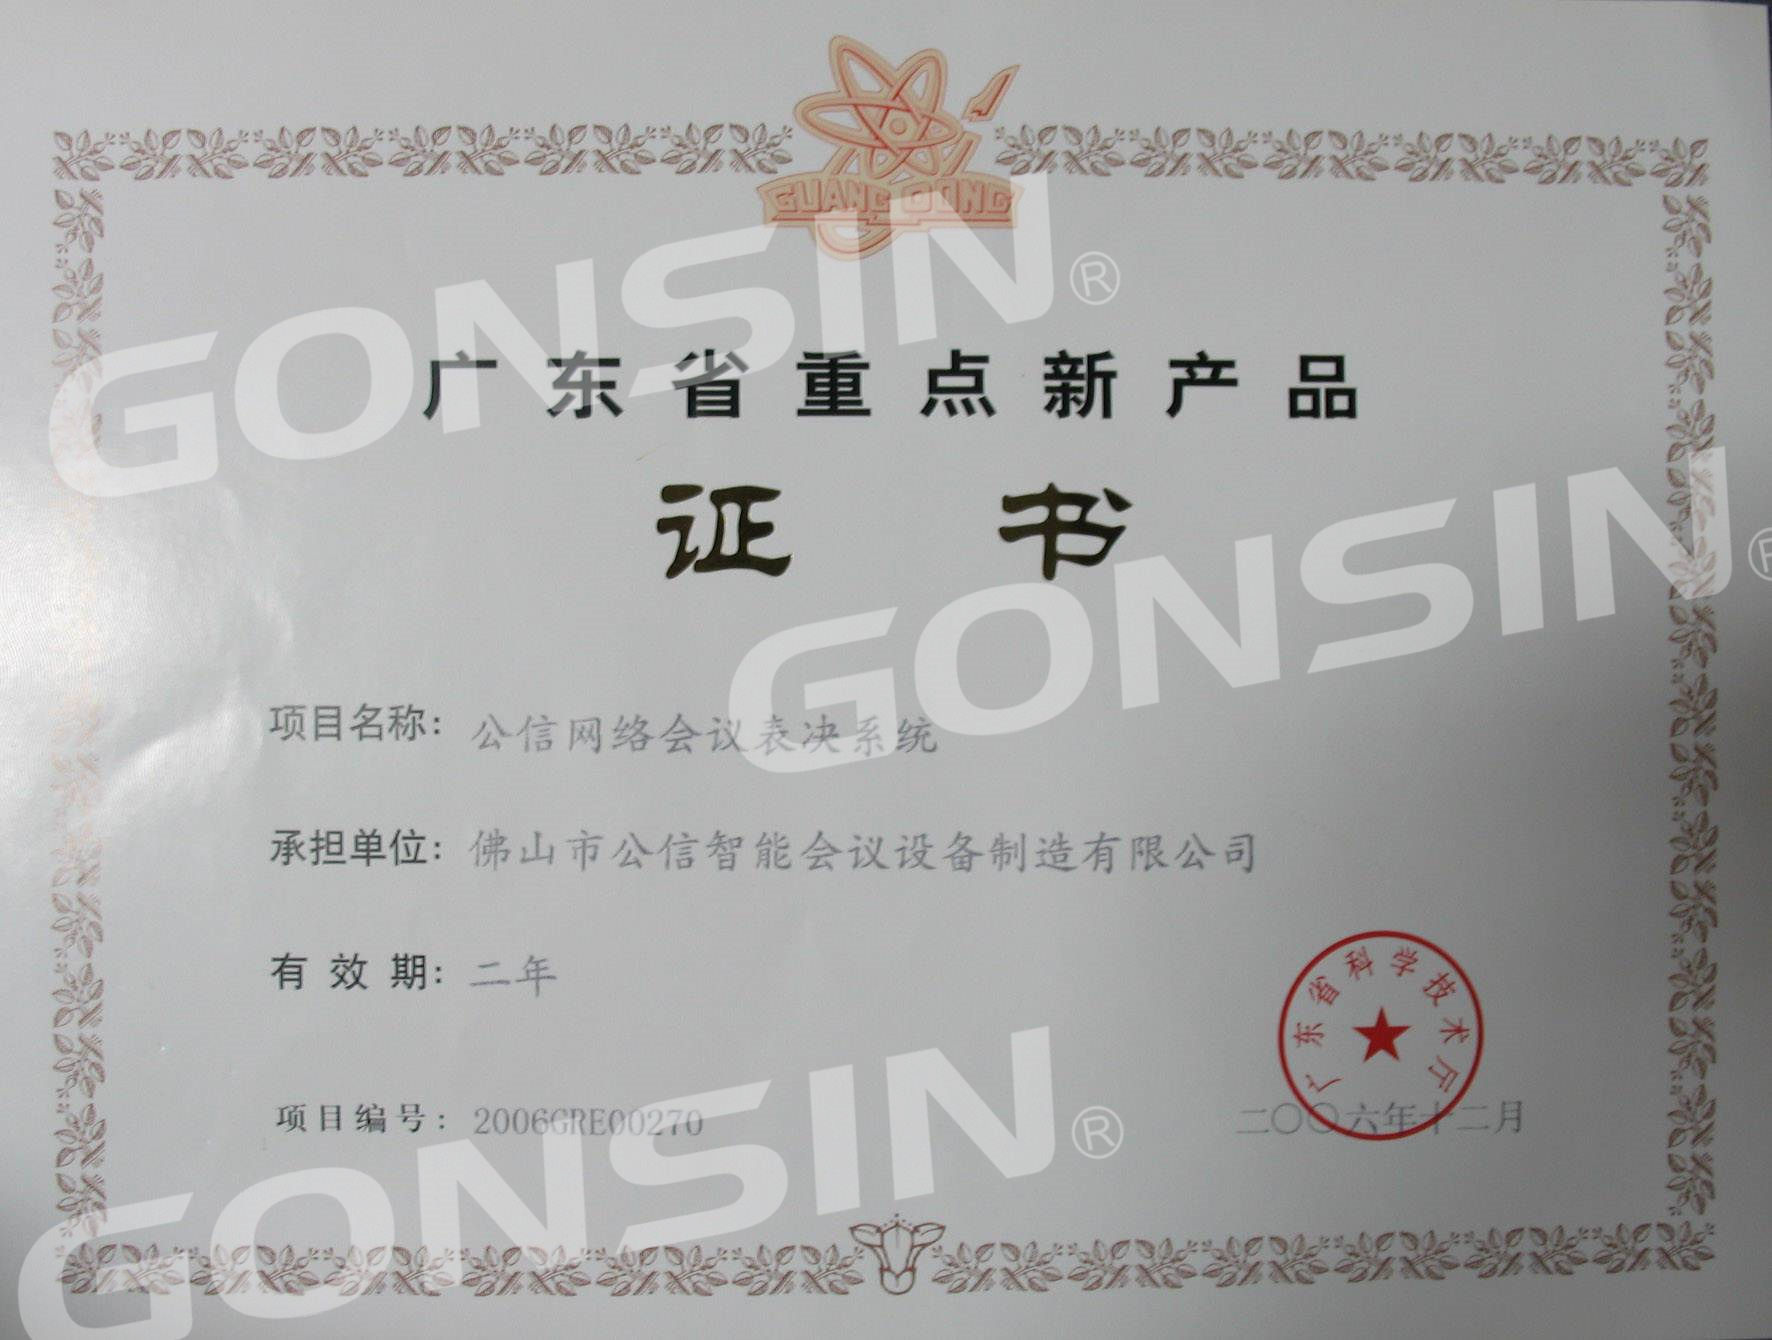 Guangdong Province Key New Product-Voting System